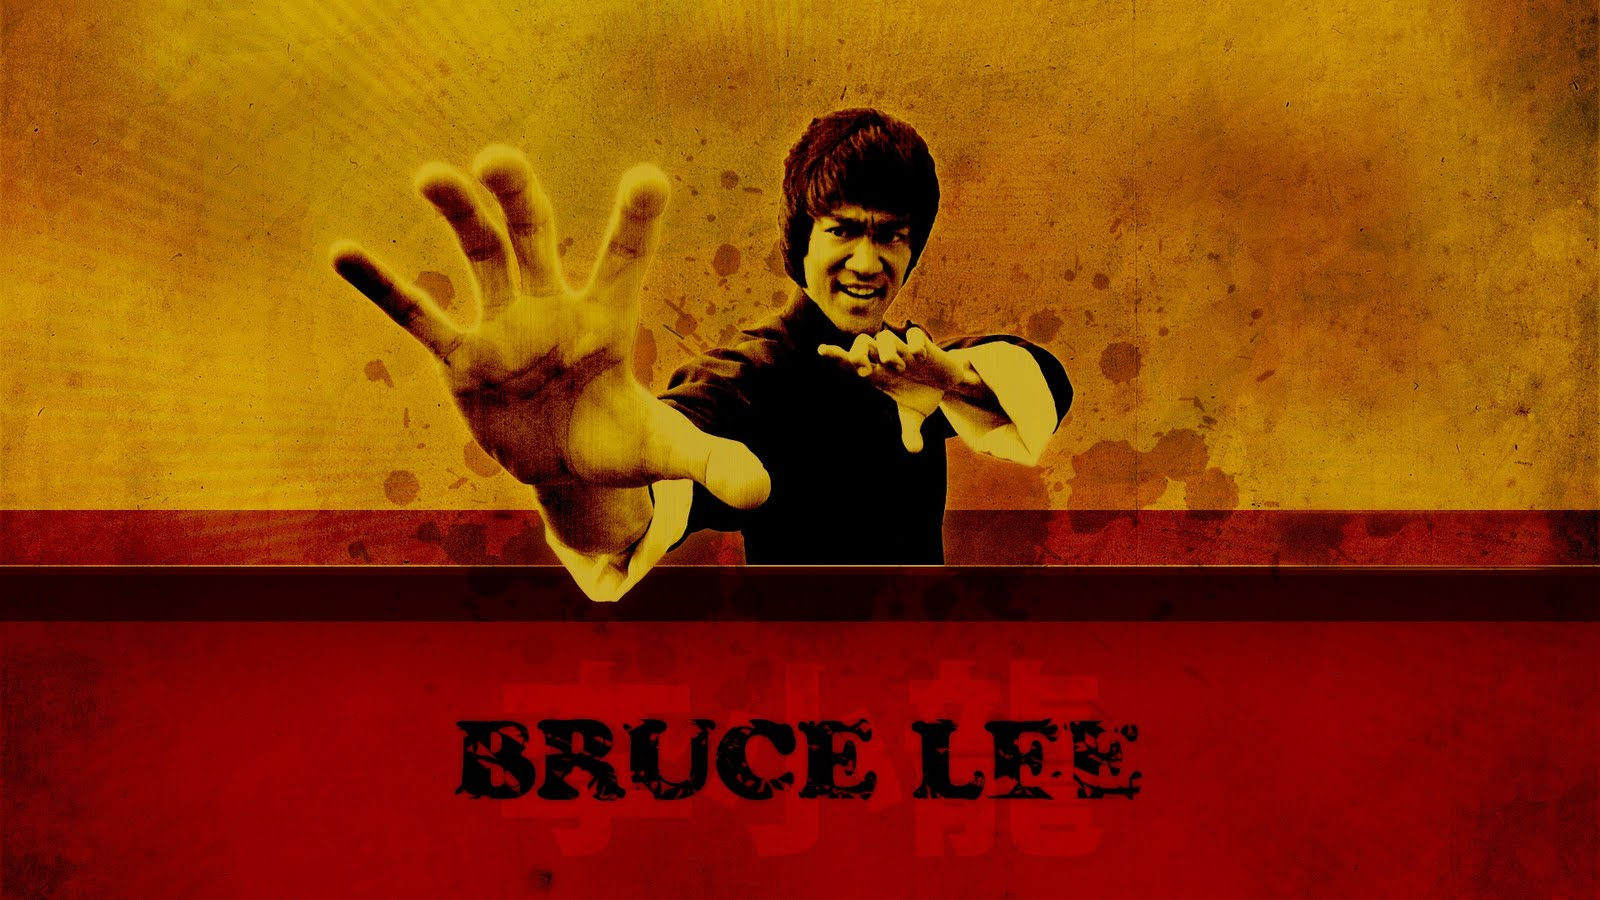 Bruce Lee Jeet Kune do Wallpaper Bruce Lee Wallpaper